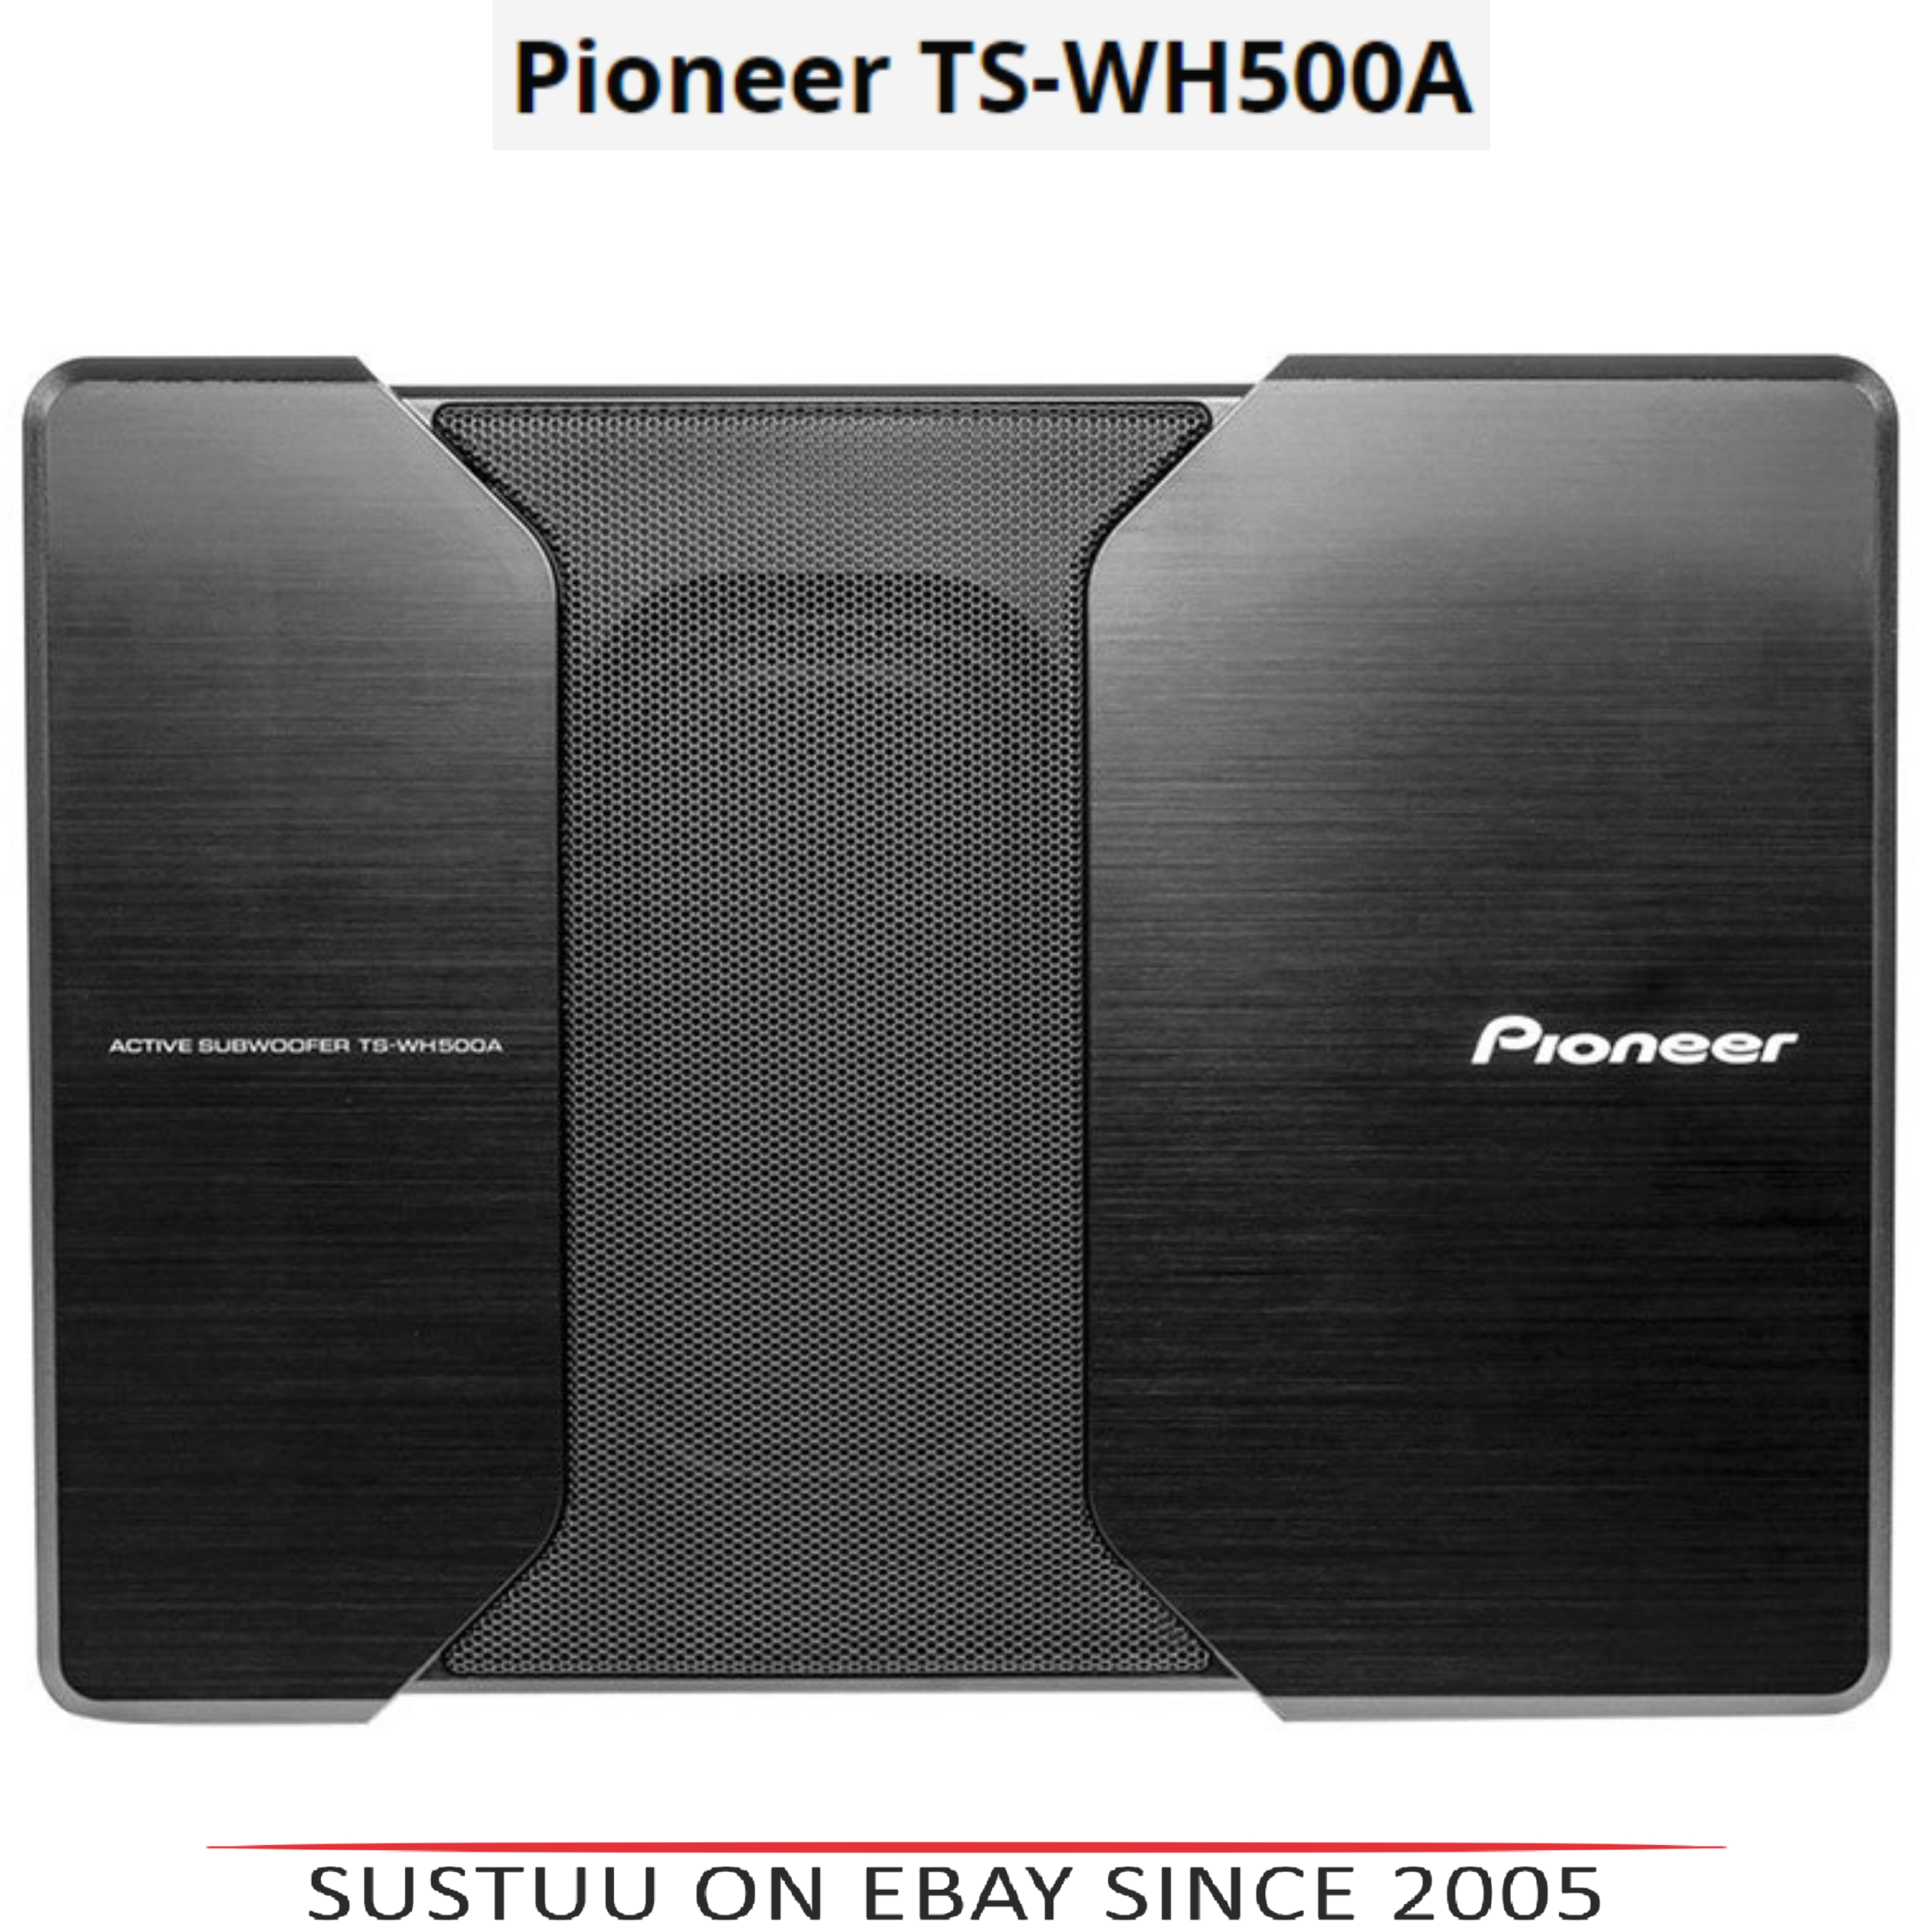 Pioneer TS WH500A 150W Slim Active Subwoofer System/built-in MOSFET Amplifier